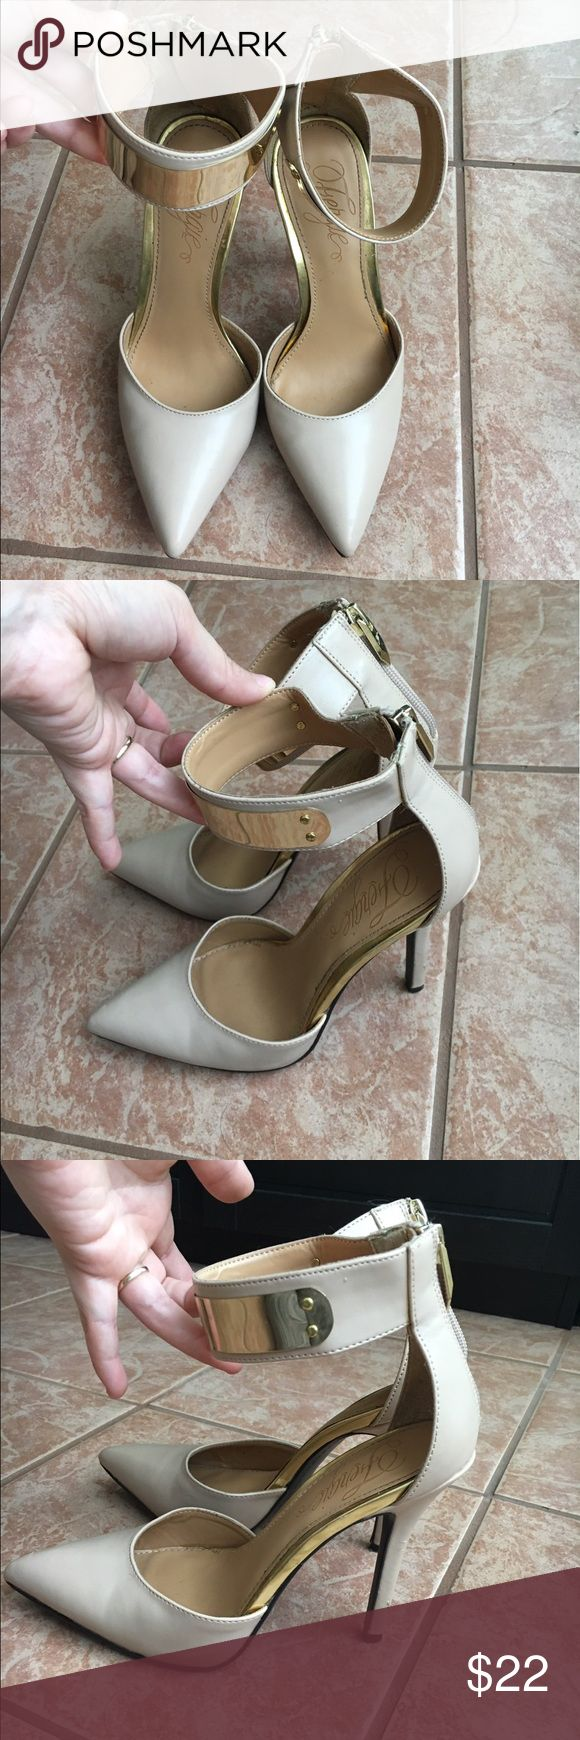 """Fergie Nude Heels Neutral Heels, Go Perfect with Any Outfit.                          4"""" heel height.                                                                       Please See All Photos for Defects                                       Open to Offers (: Fergie Shoes Heels"""